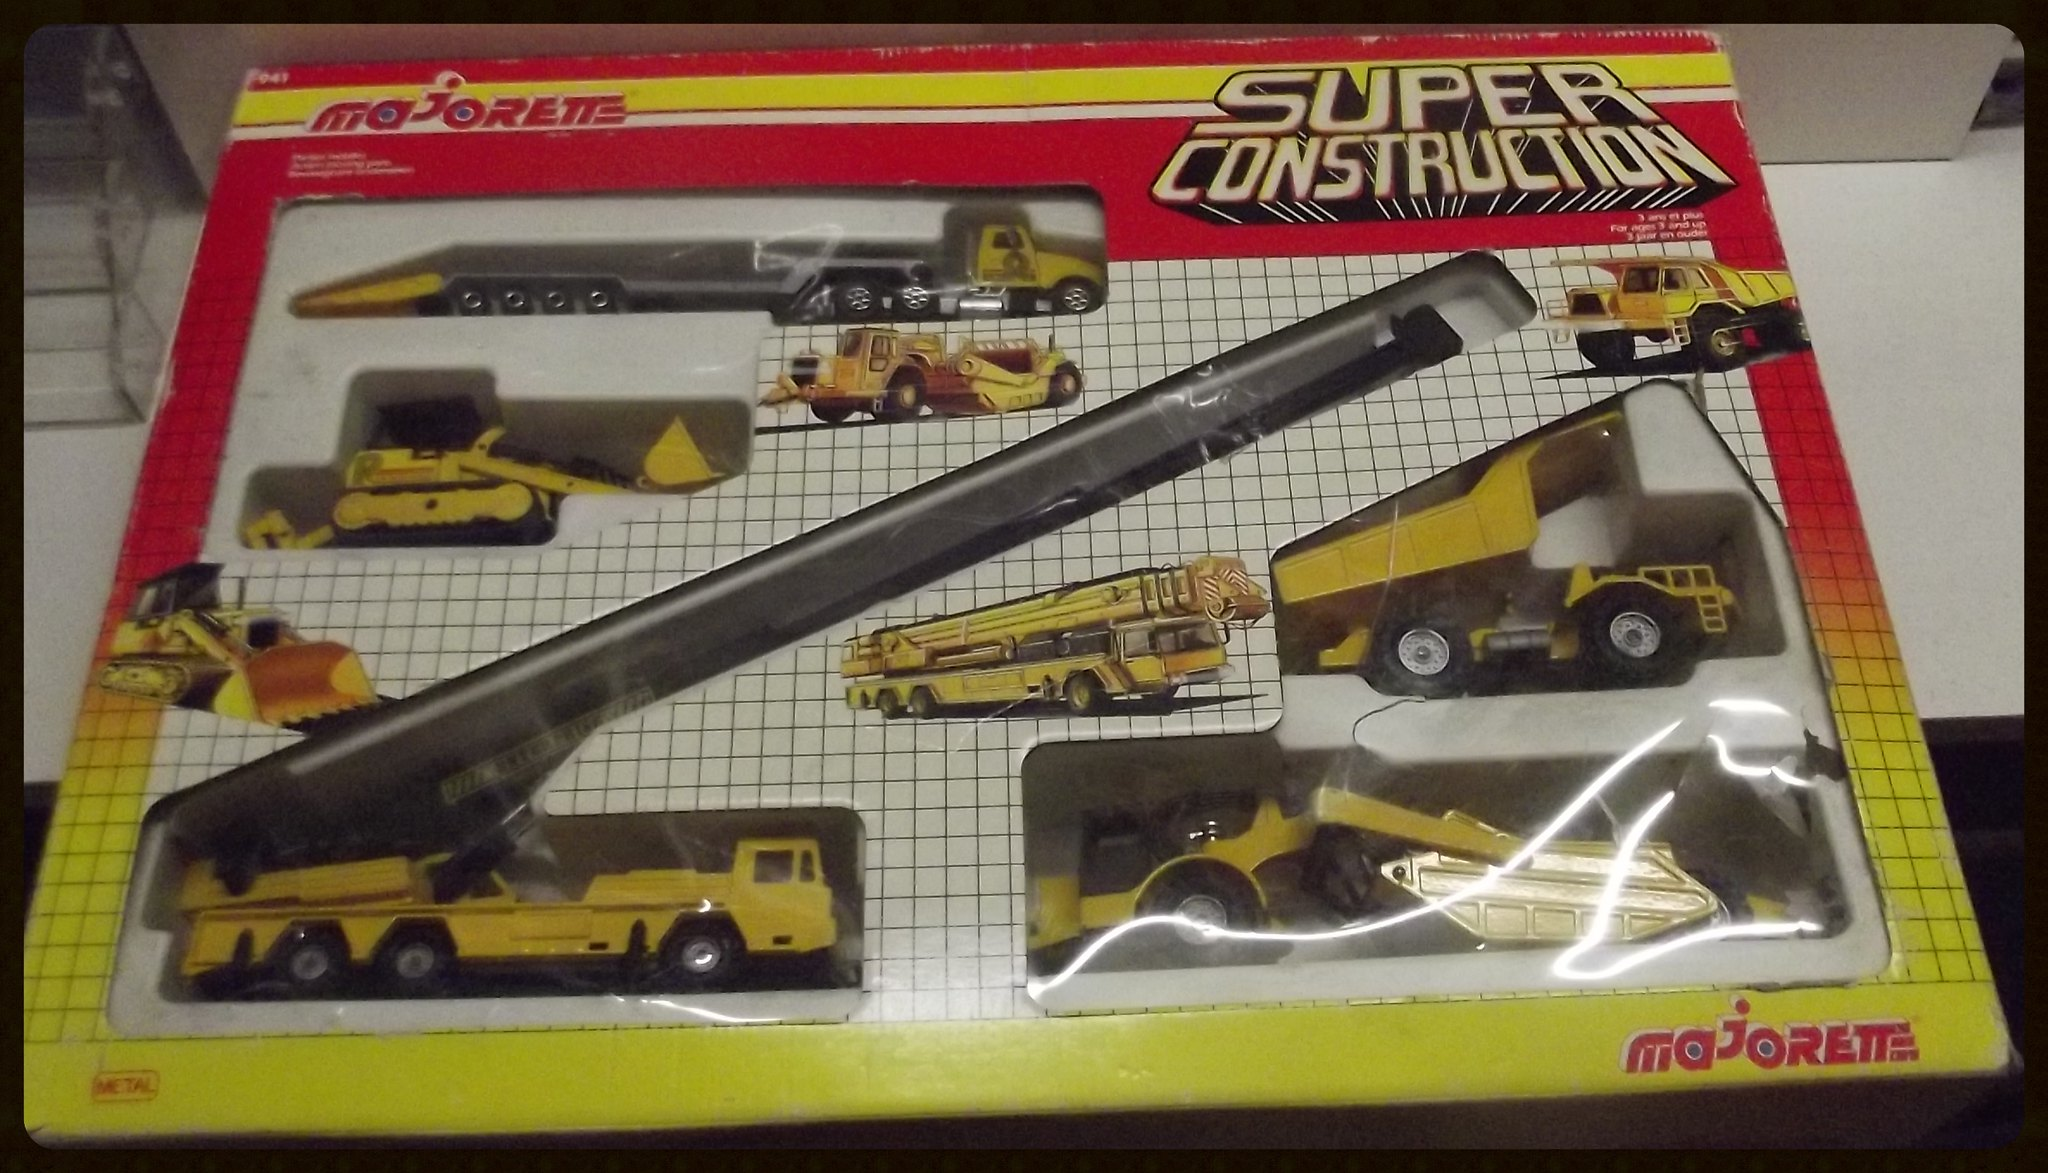 N°941 coffret Super construction. 32750514352_286bfe2ddd_k